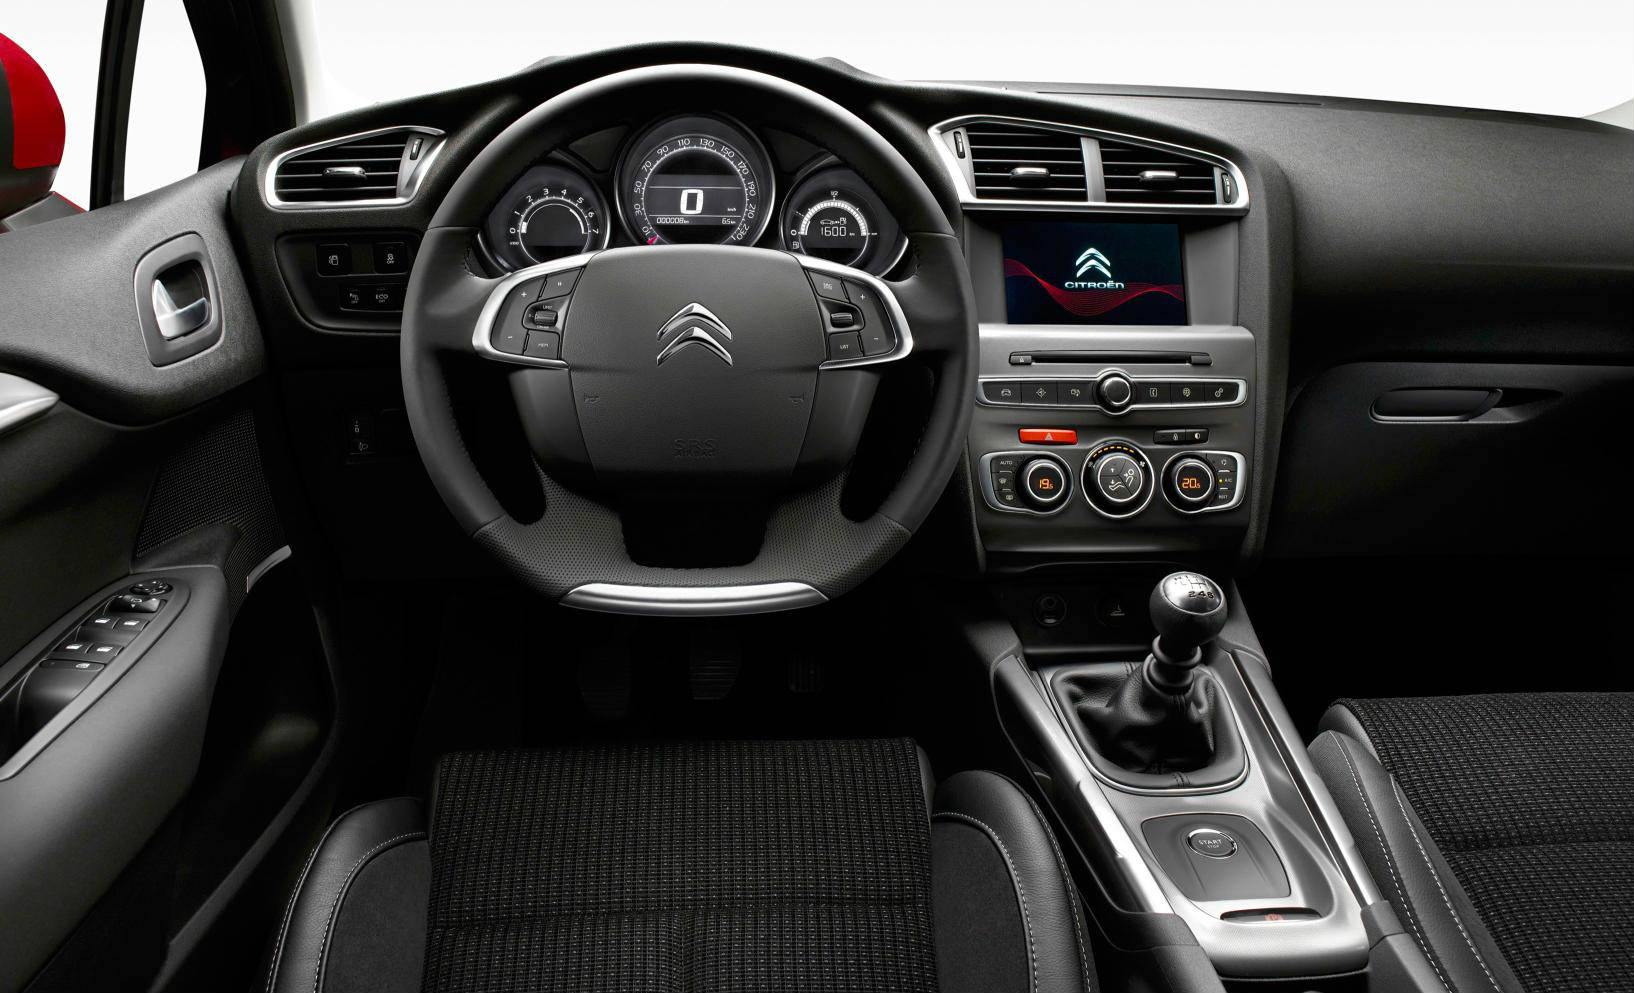 Citreon C4 interior design